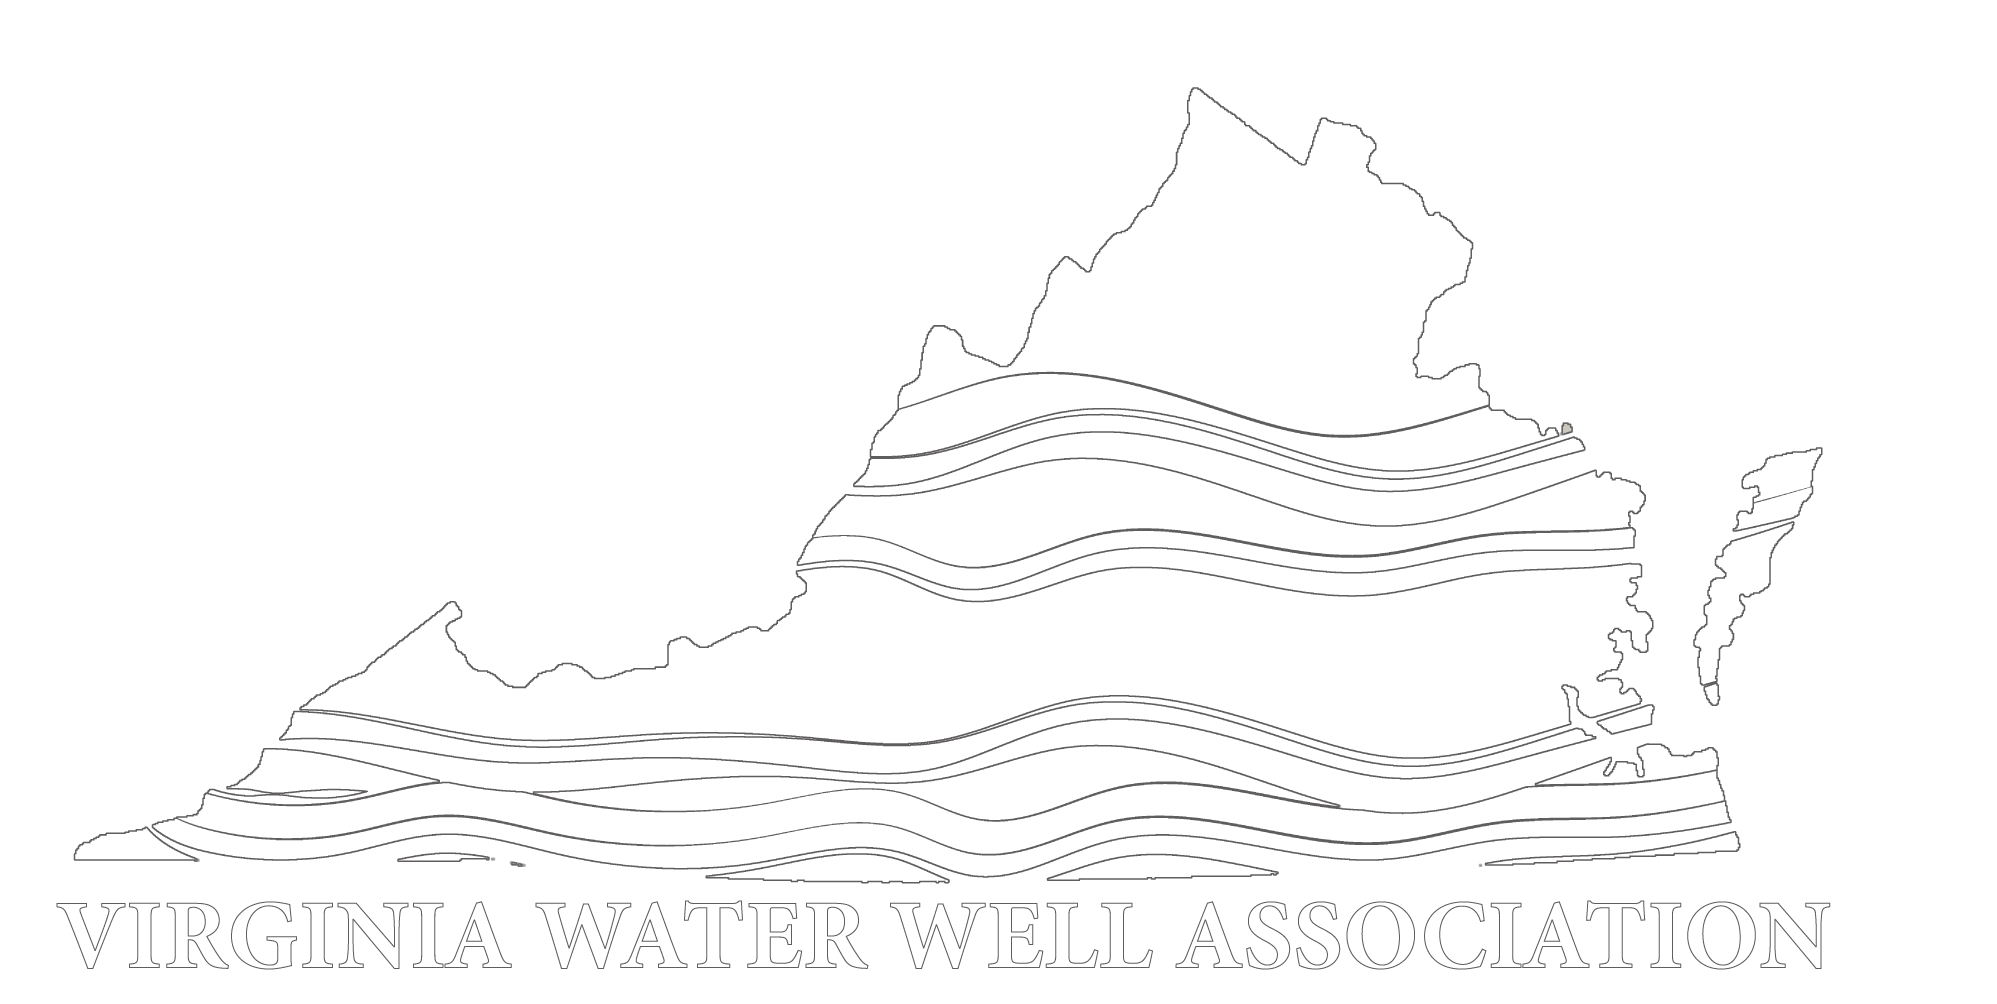 Virginia Water Well Association